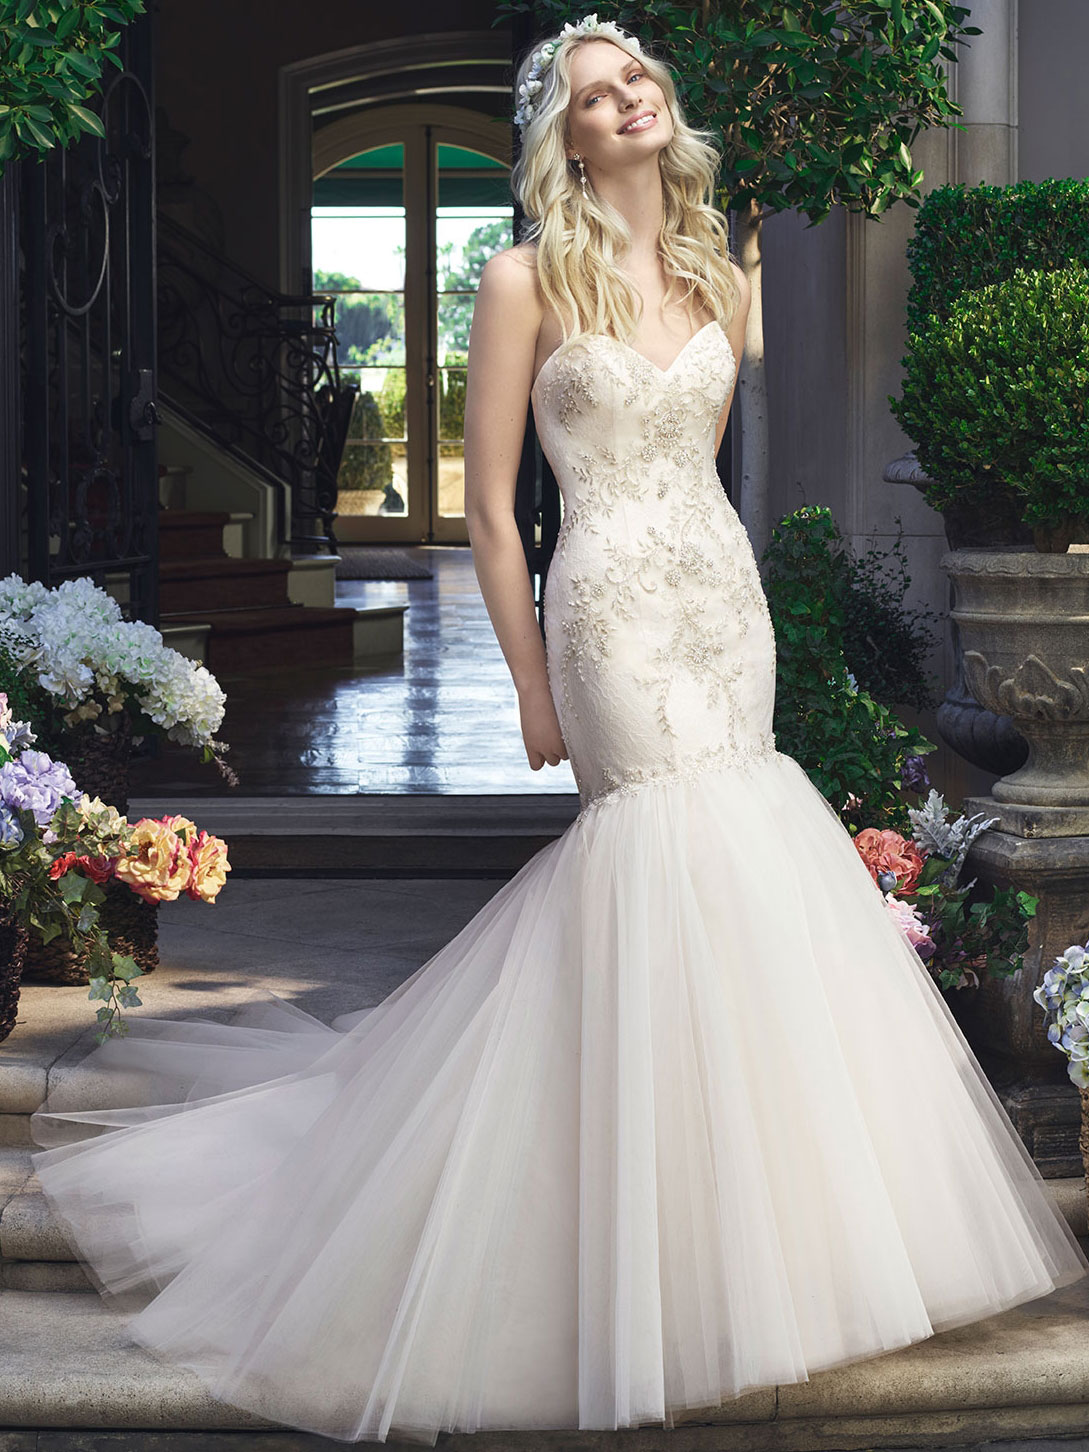 Casablanca 2219 Beaded Bodice Bridal Gown|DimitraDesigns.com